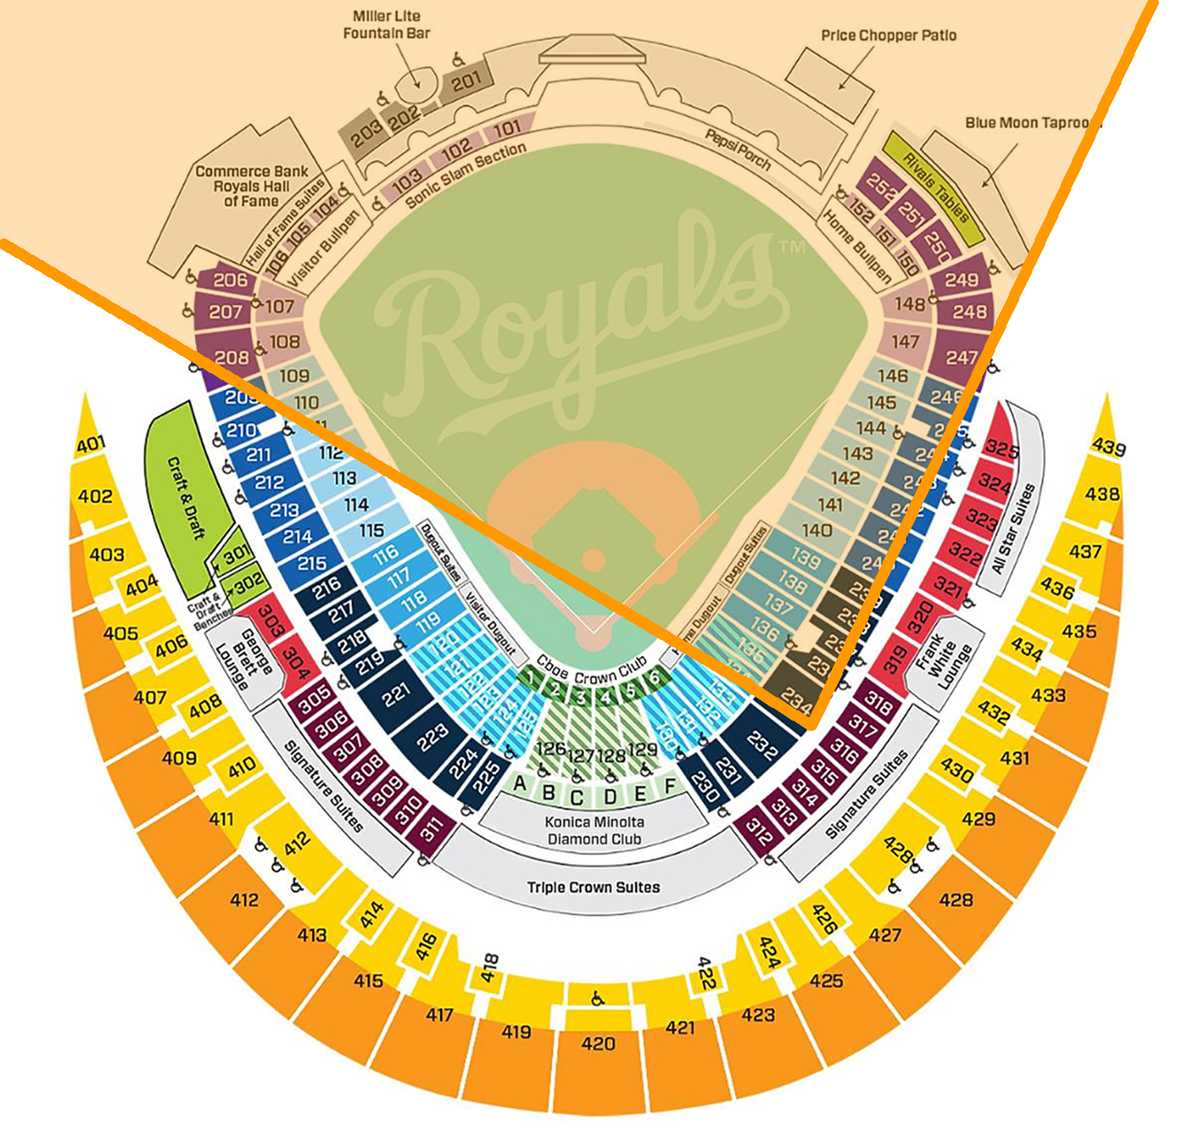 *Orange area indicates sun exposure    edited from source: https://www.mlb.com/royals/ballpark/seating-map